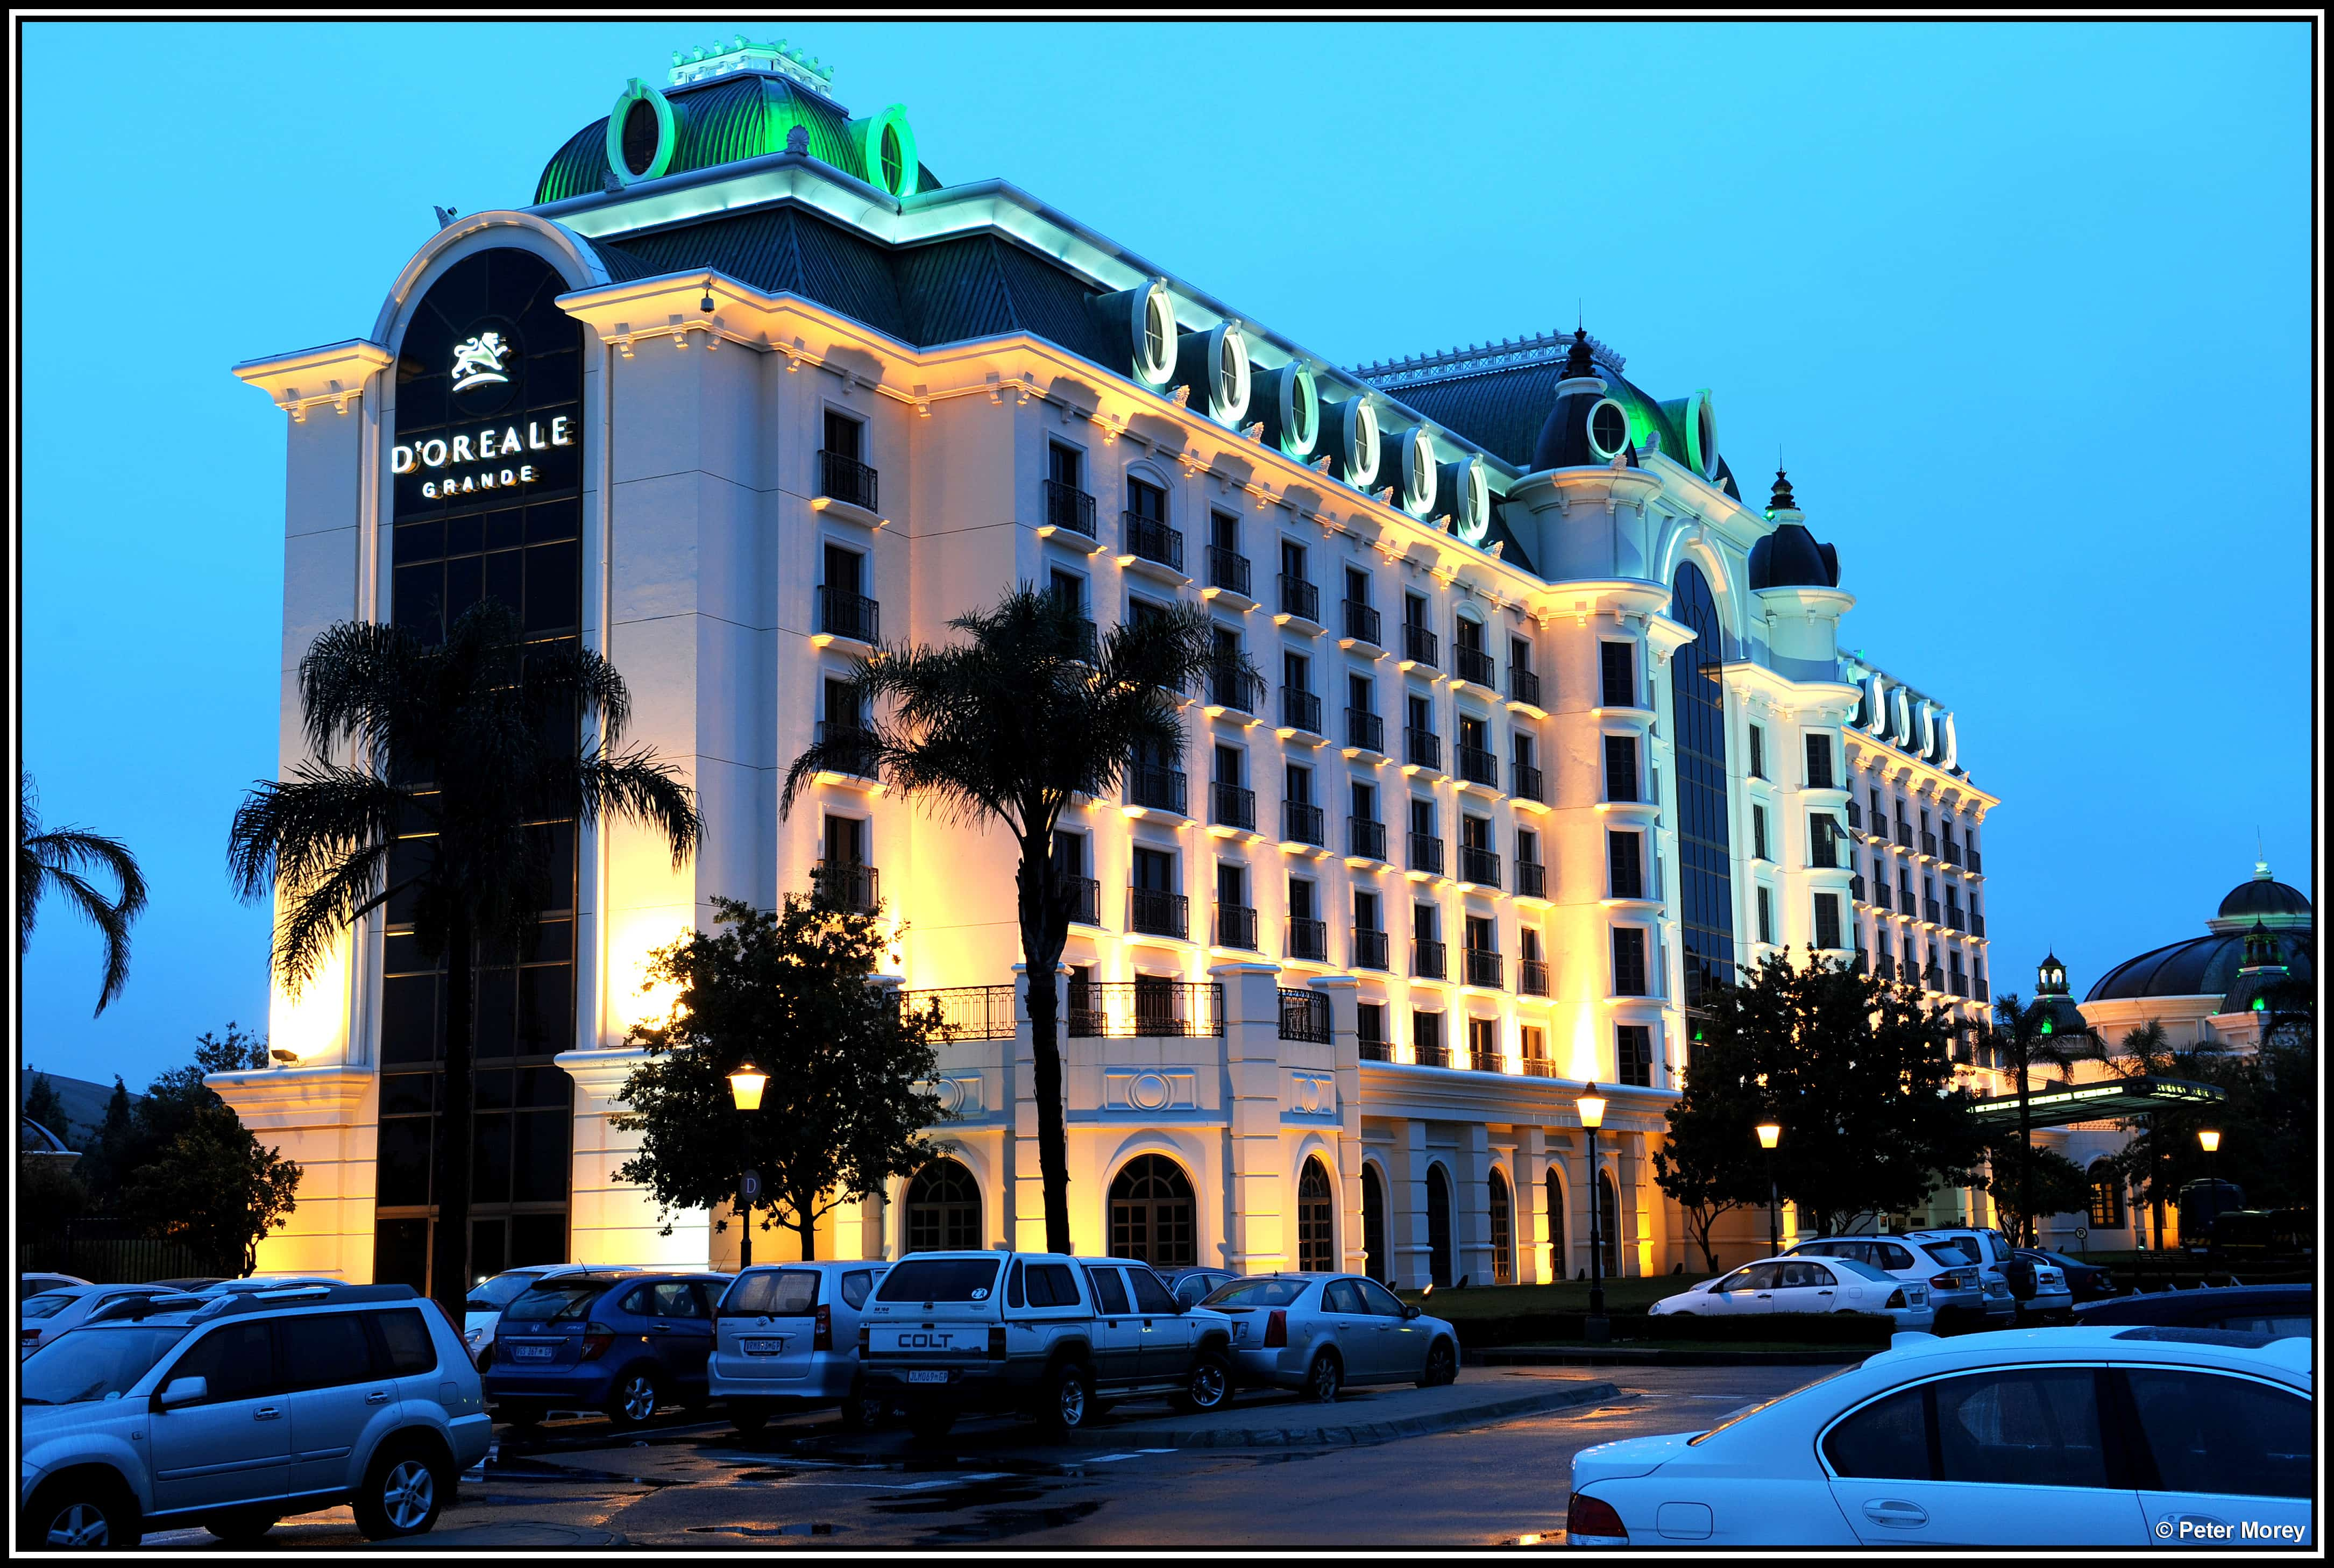 Peermont D'oreale Grande Hotel At Emperors Palace. Hotel El Espanol Paseo De Montejo. Hotel Theodul. Cityexpress Insurgentes Sur Hotel. Granny Mouse Country House & Spa. Alila Jakarta Hotel. Citadines Zhuankou Wuhan. Vision Hotel Apartments. The Old Mill Hotel